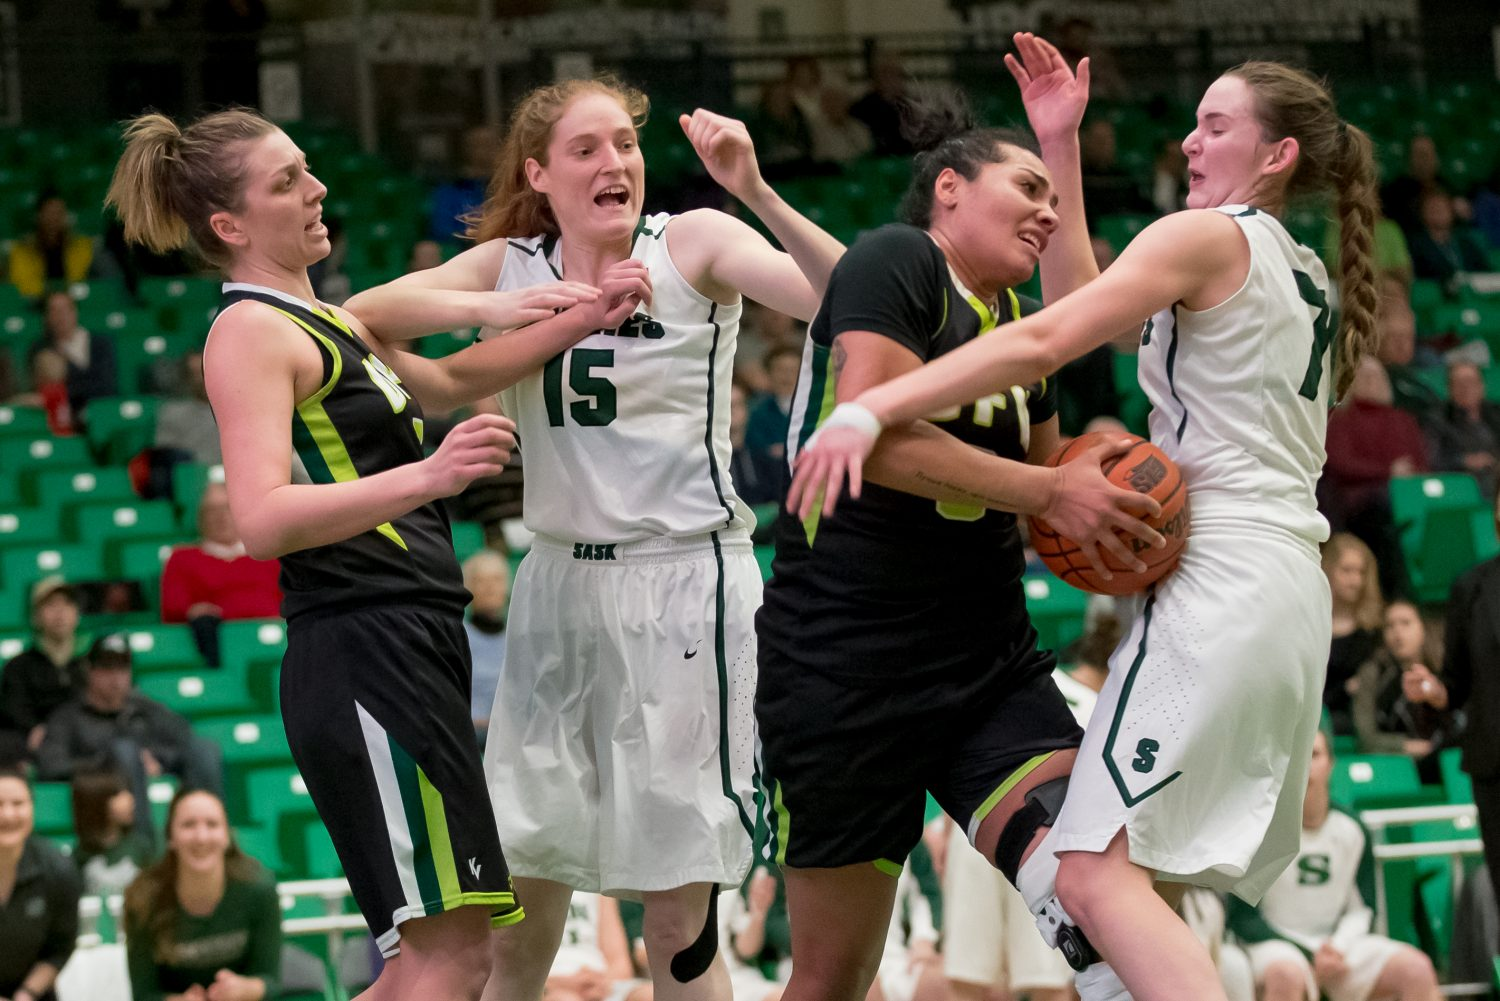 cascades women s hoopsters fall to huskies in hard fought game 3 ufv cascades. Black Bedroom Furniture Sets. Home Design Ideas